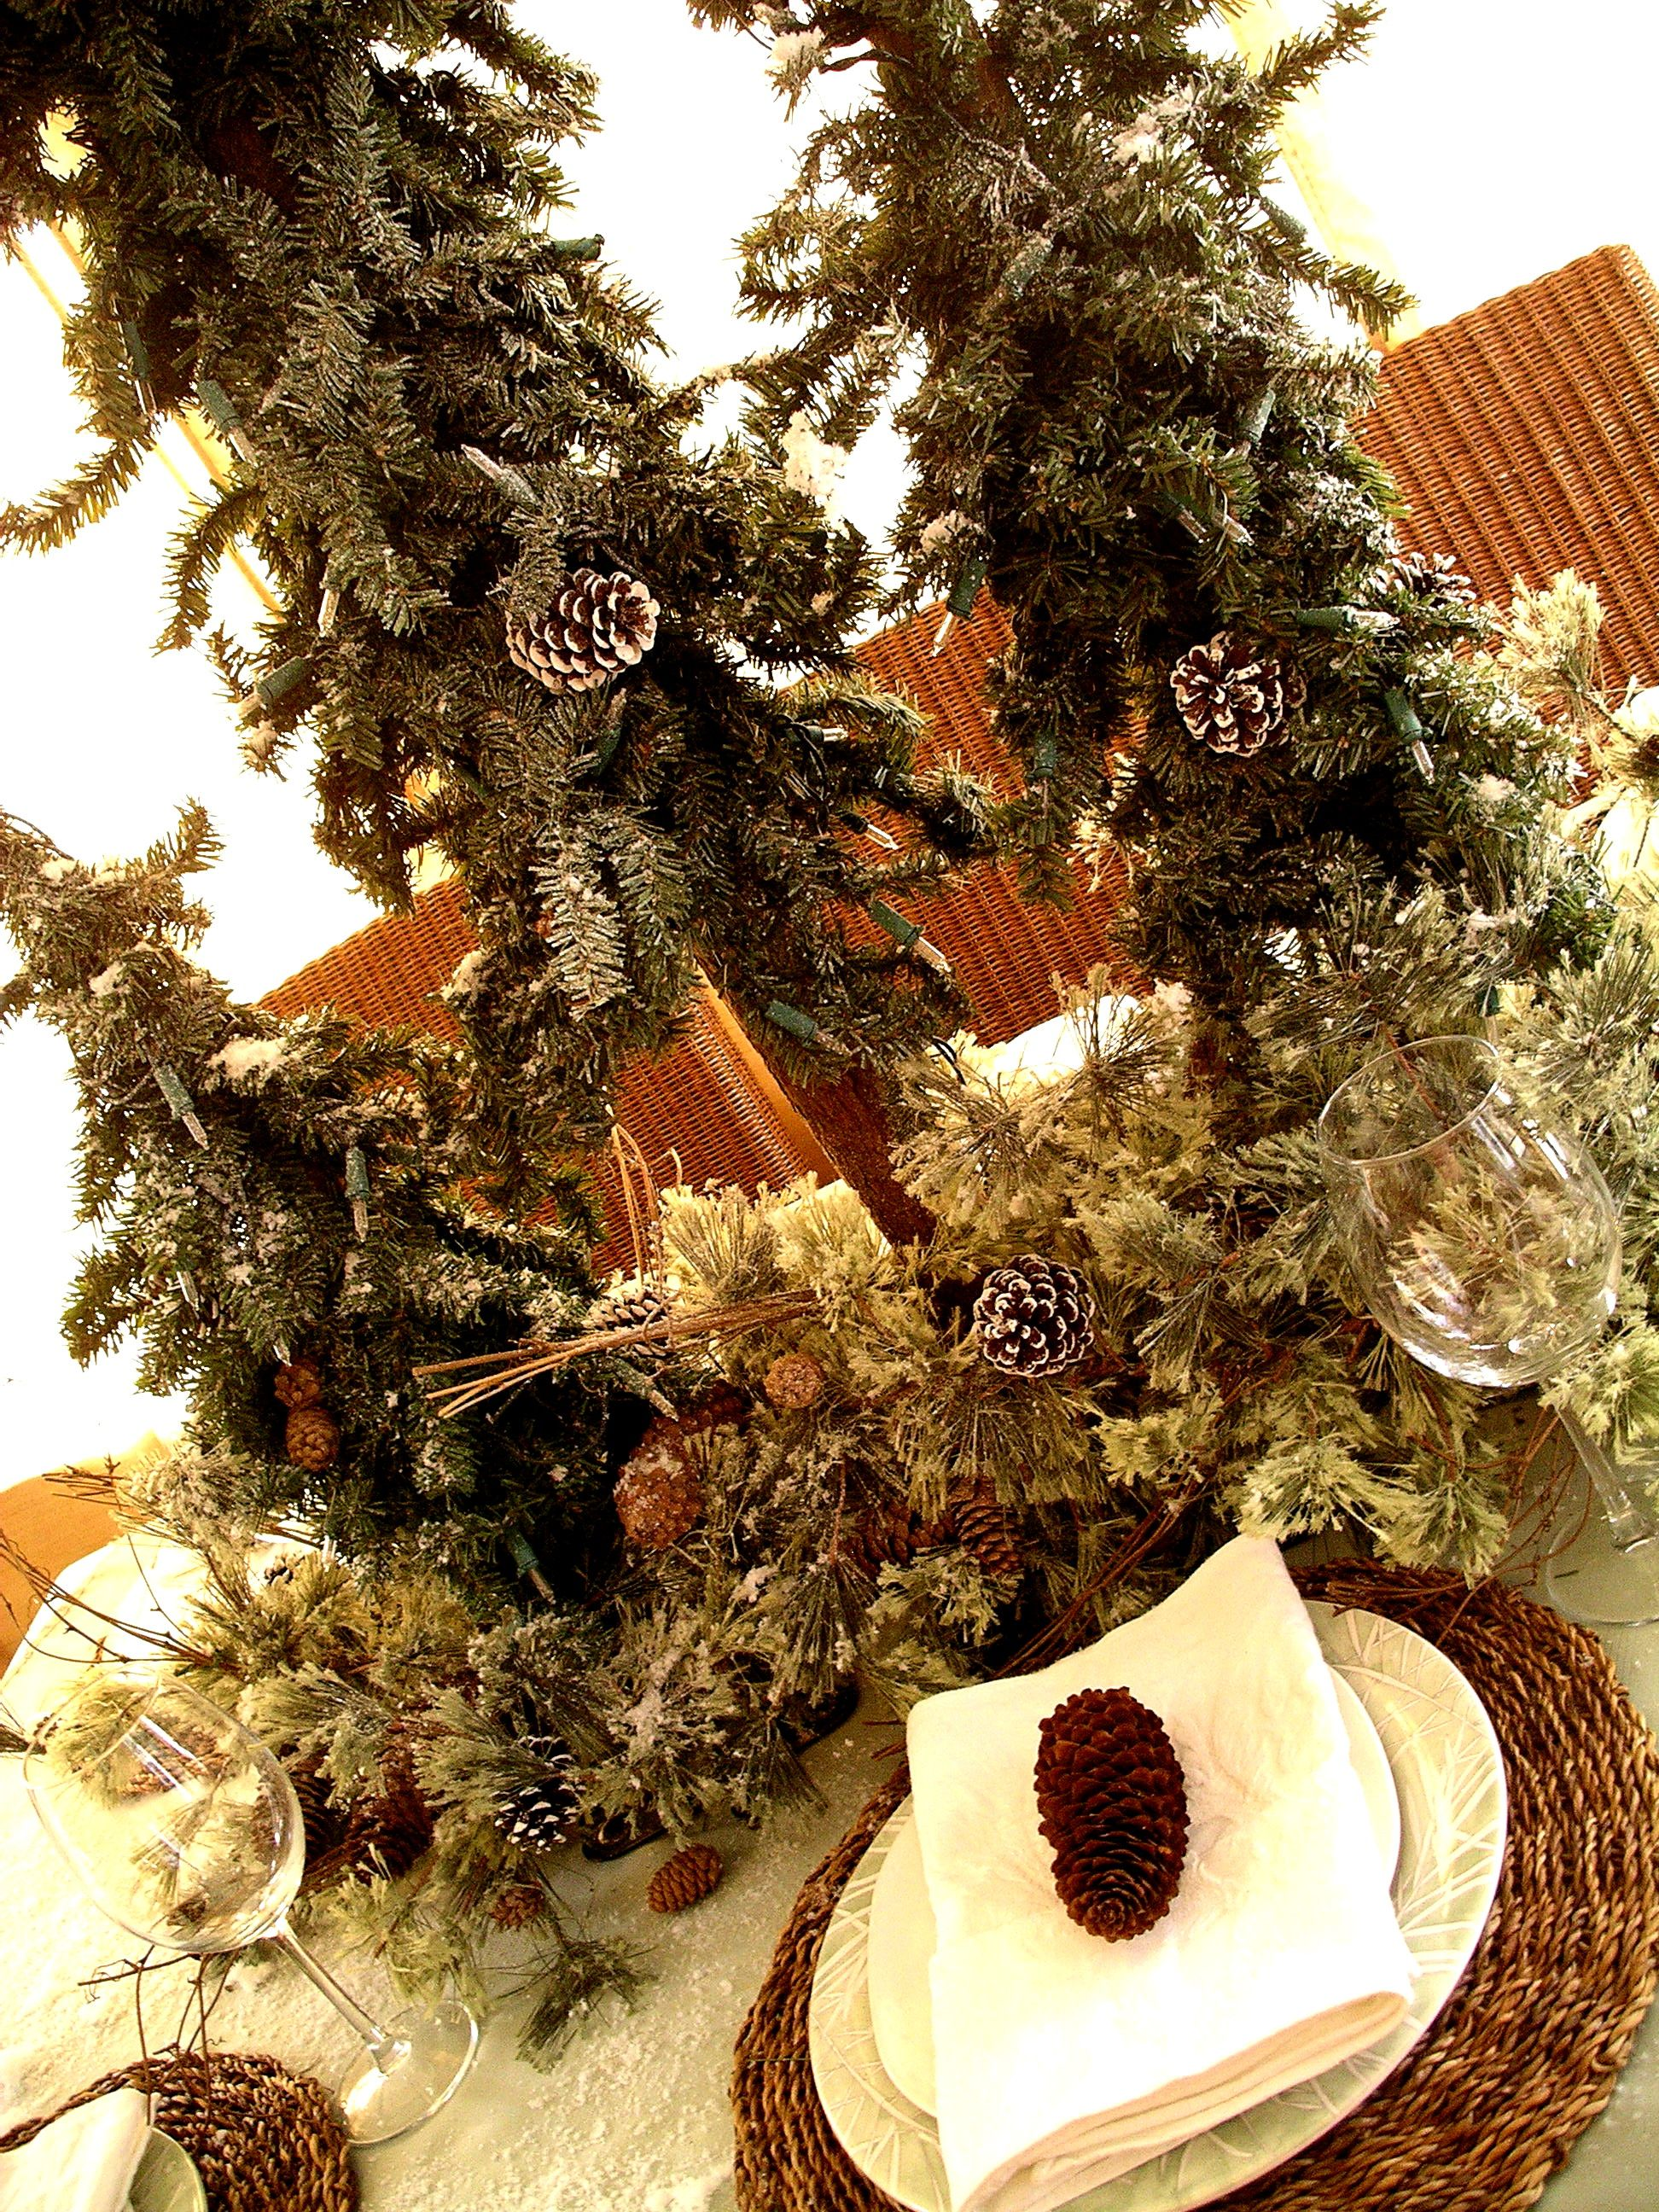 page rustic elements.  Elements A Winter Table Design In White U0026 Mint Accented With Rustic Elements Of  Evergreens And Pine Cones Httpwwwbloomedtolastcompage9weddingevent  Throughout Page Rustic